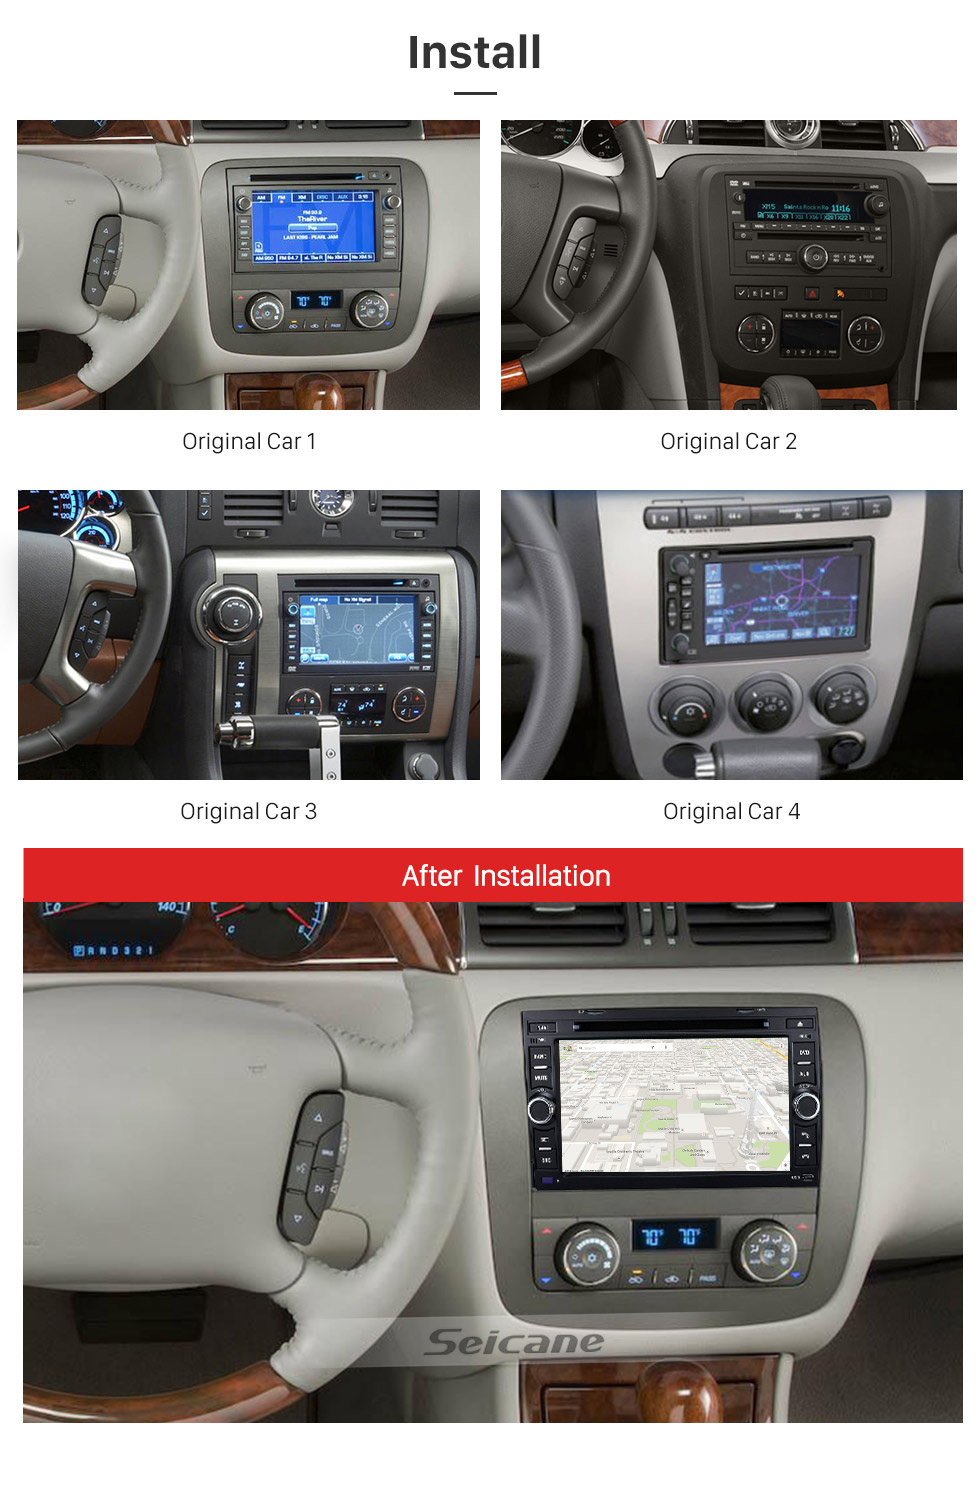 Seicane Android 8.0 Touch Screen GPS Navigation System 2007-2011 Chevrolet Chevy Equinox with Radio DVD Player Bluetooth WIFI Mirror Link Steering Wheel Control DVR